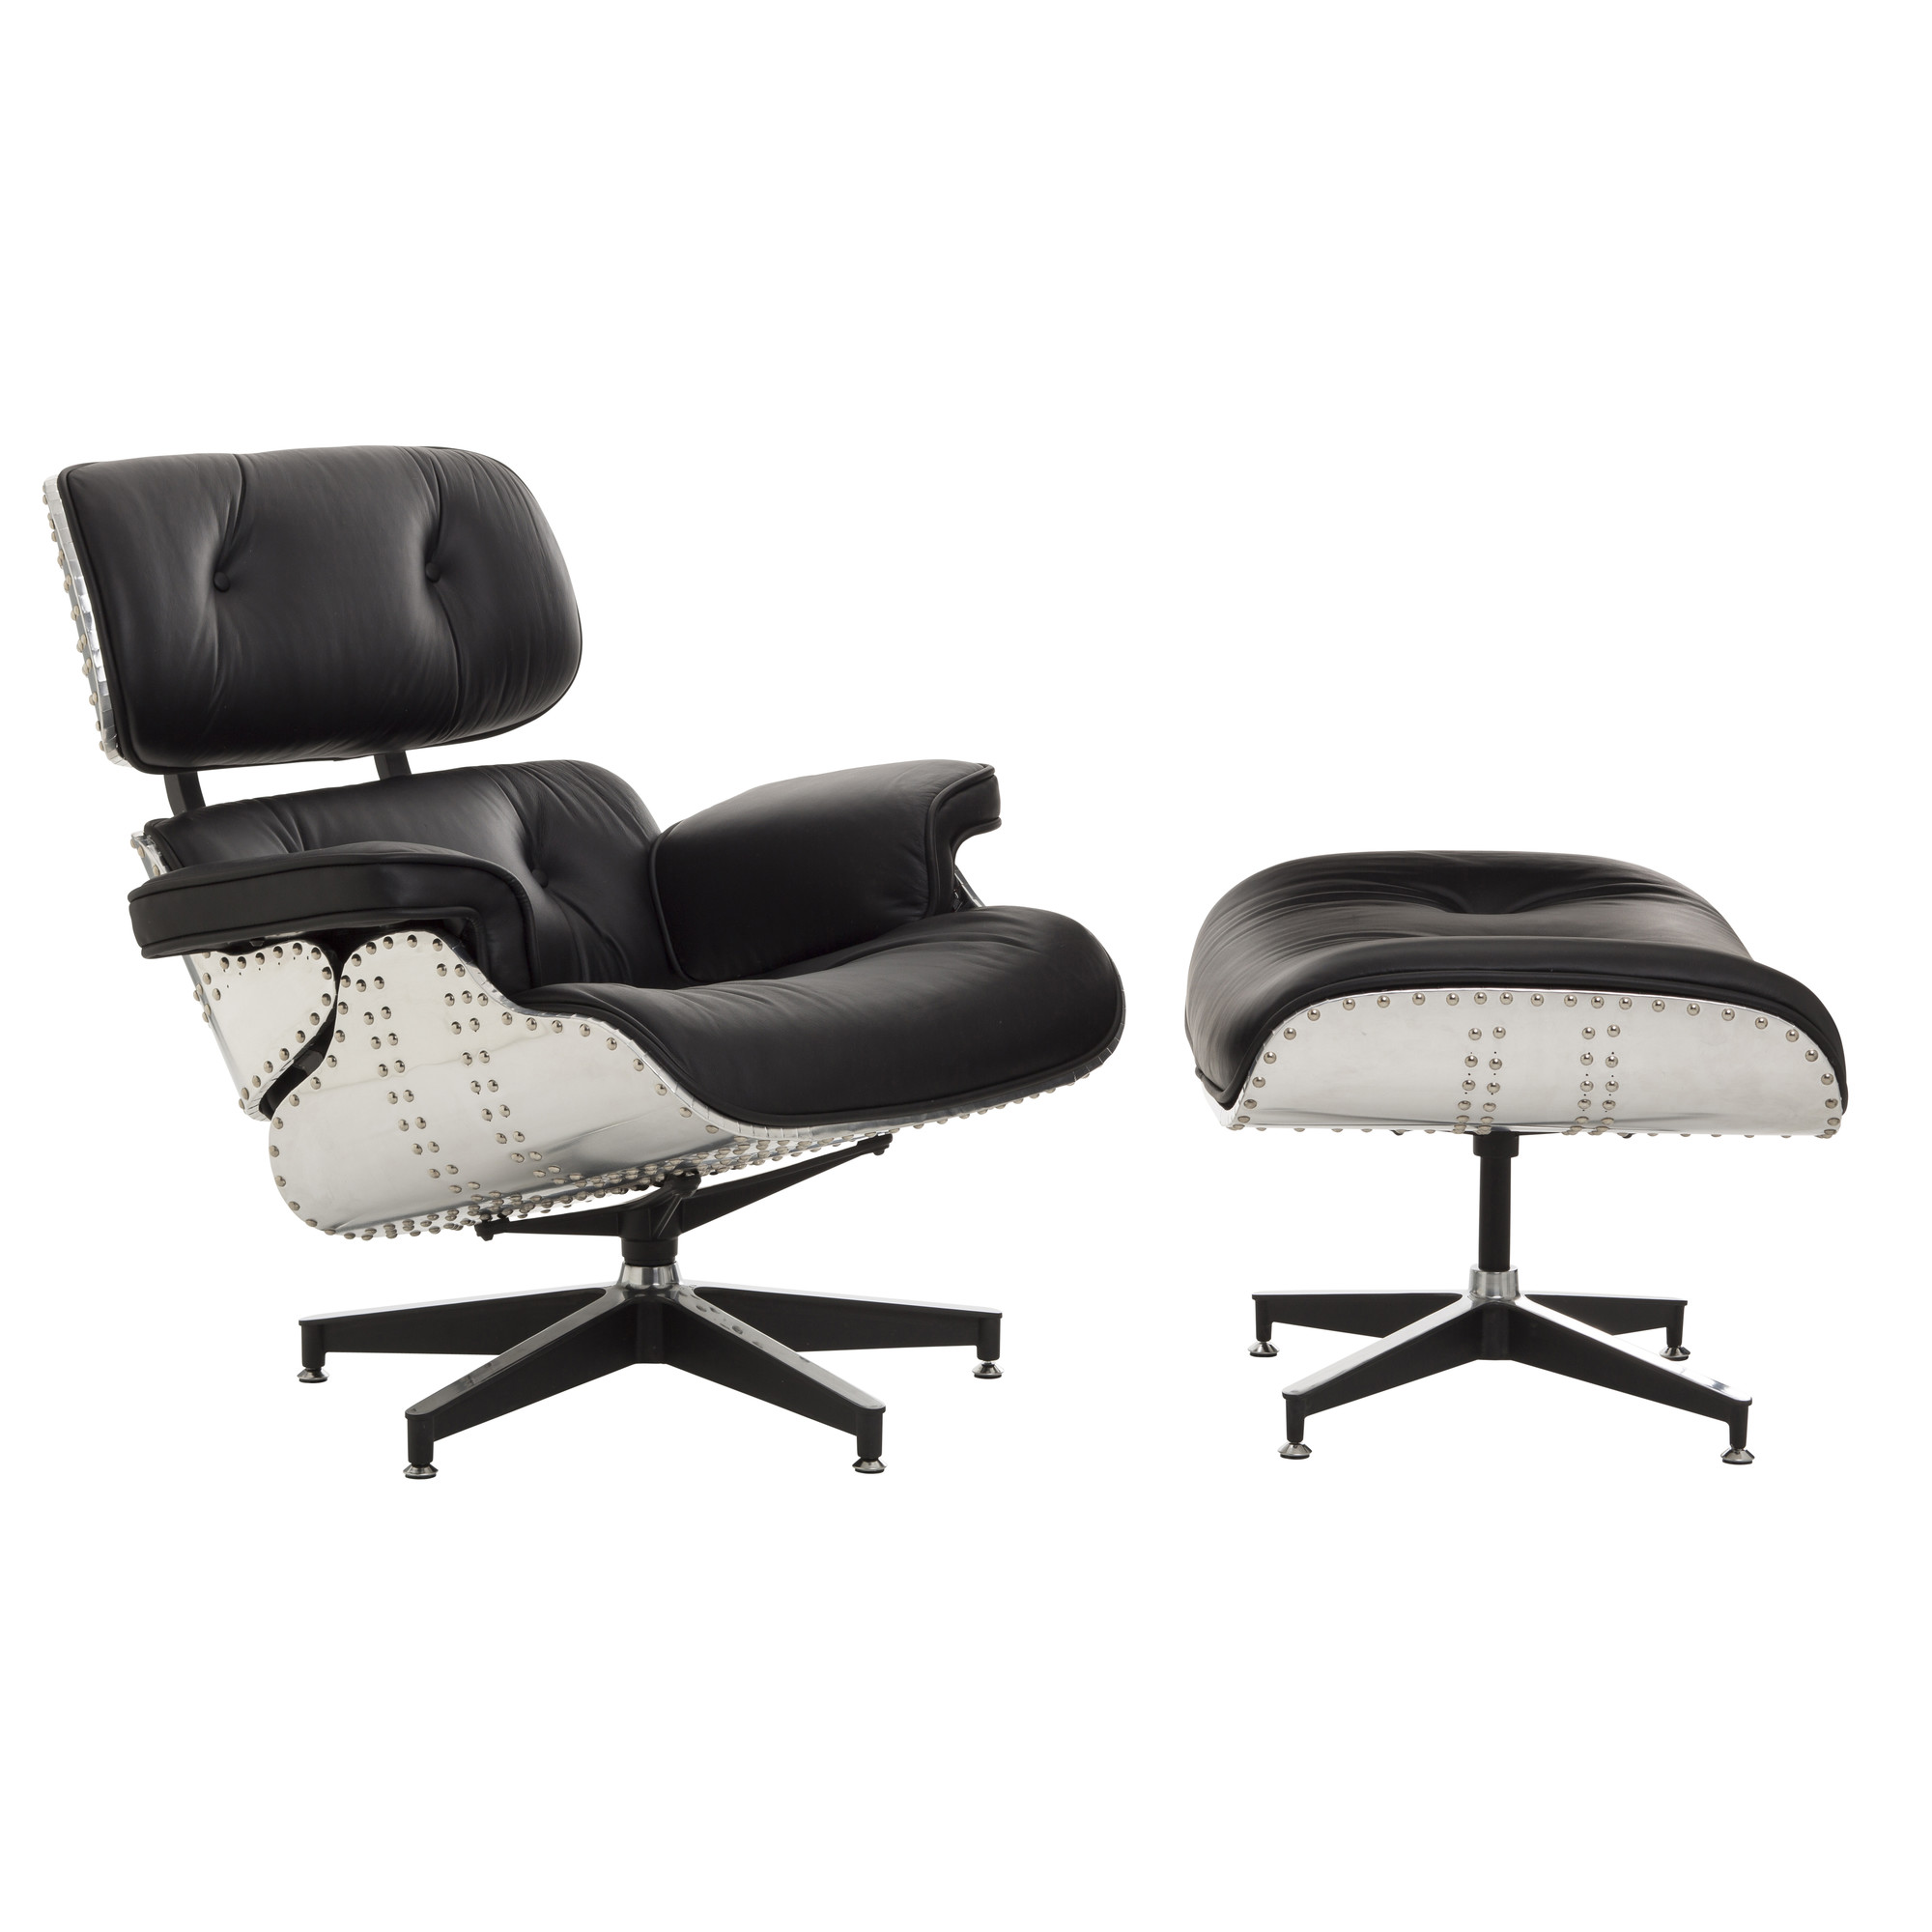 New eames replica aluminium lounge chair ottoman ebay for Eames alu chair replica